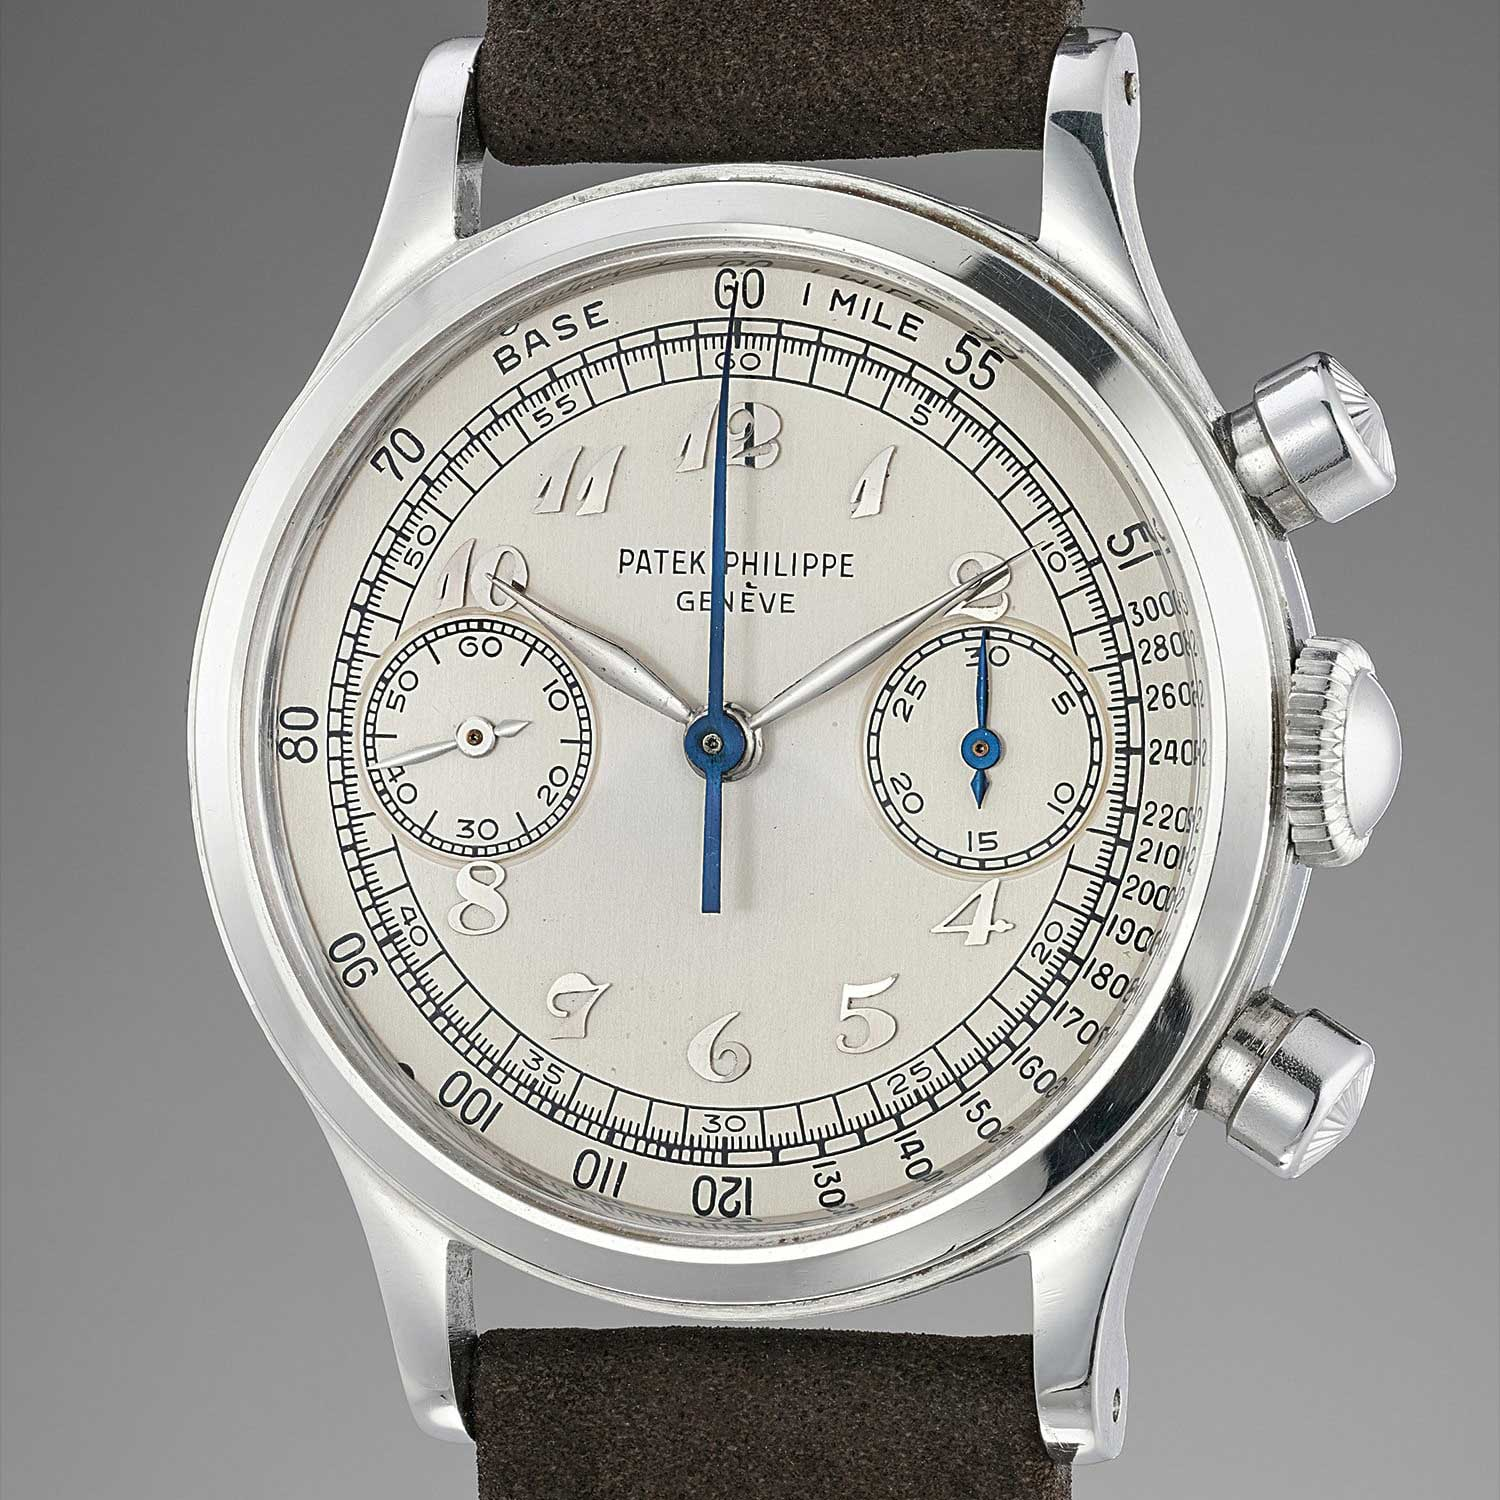 1950 Patek Philippe chronograph ref. 1463 in steel with Breguet numerals (Image: phillipswatches.com)